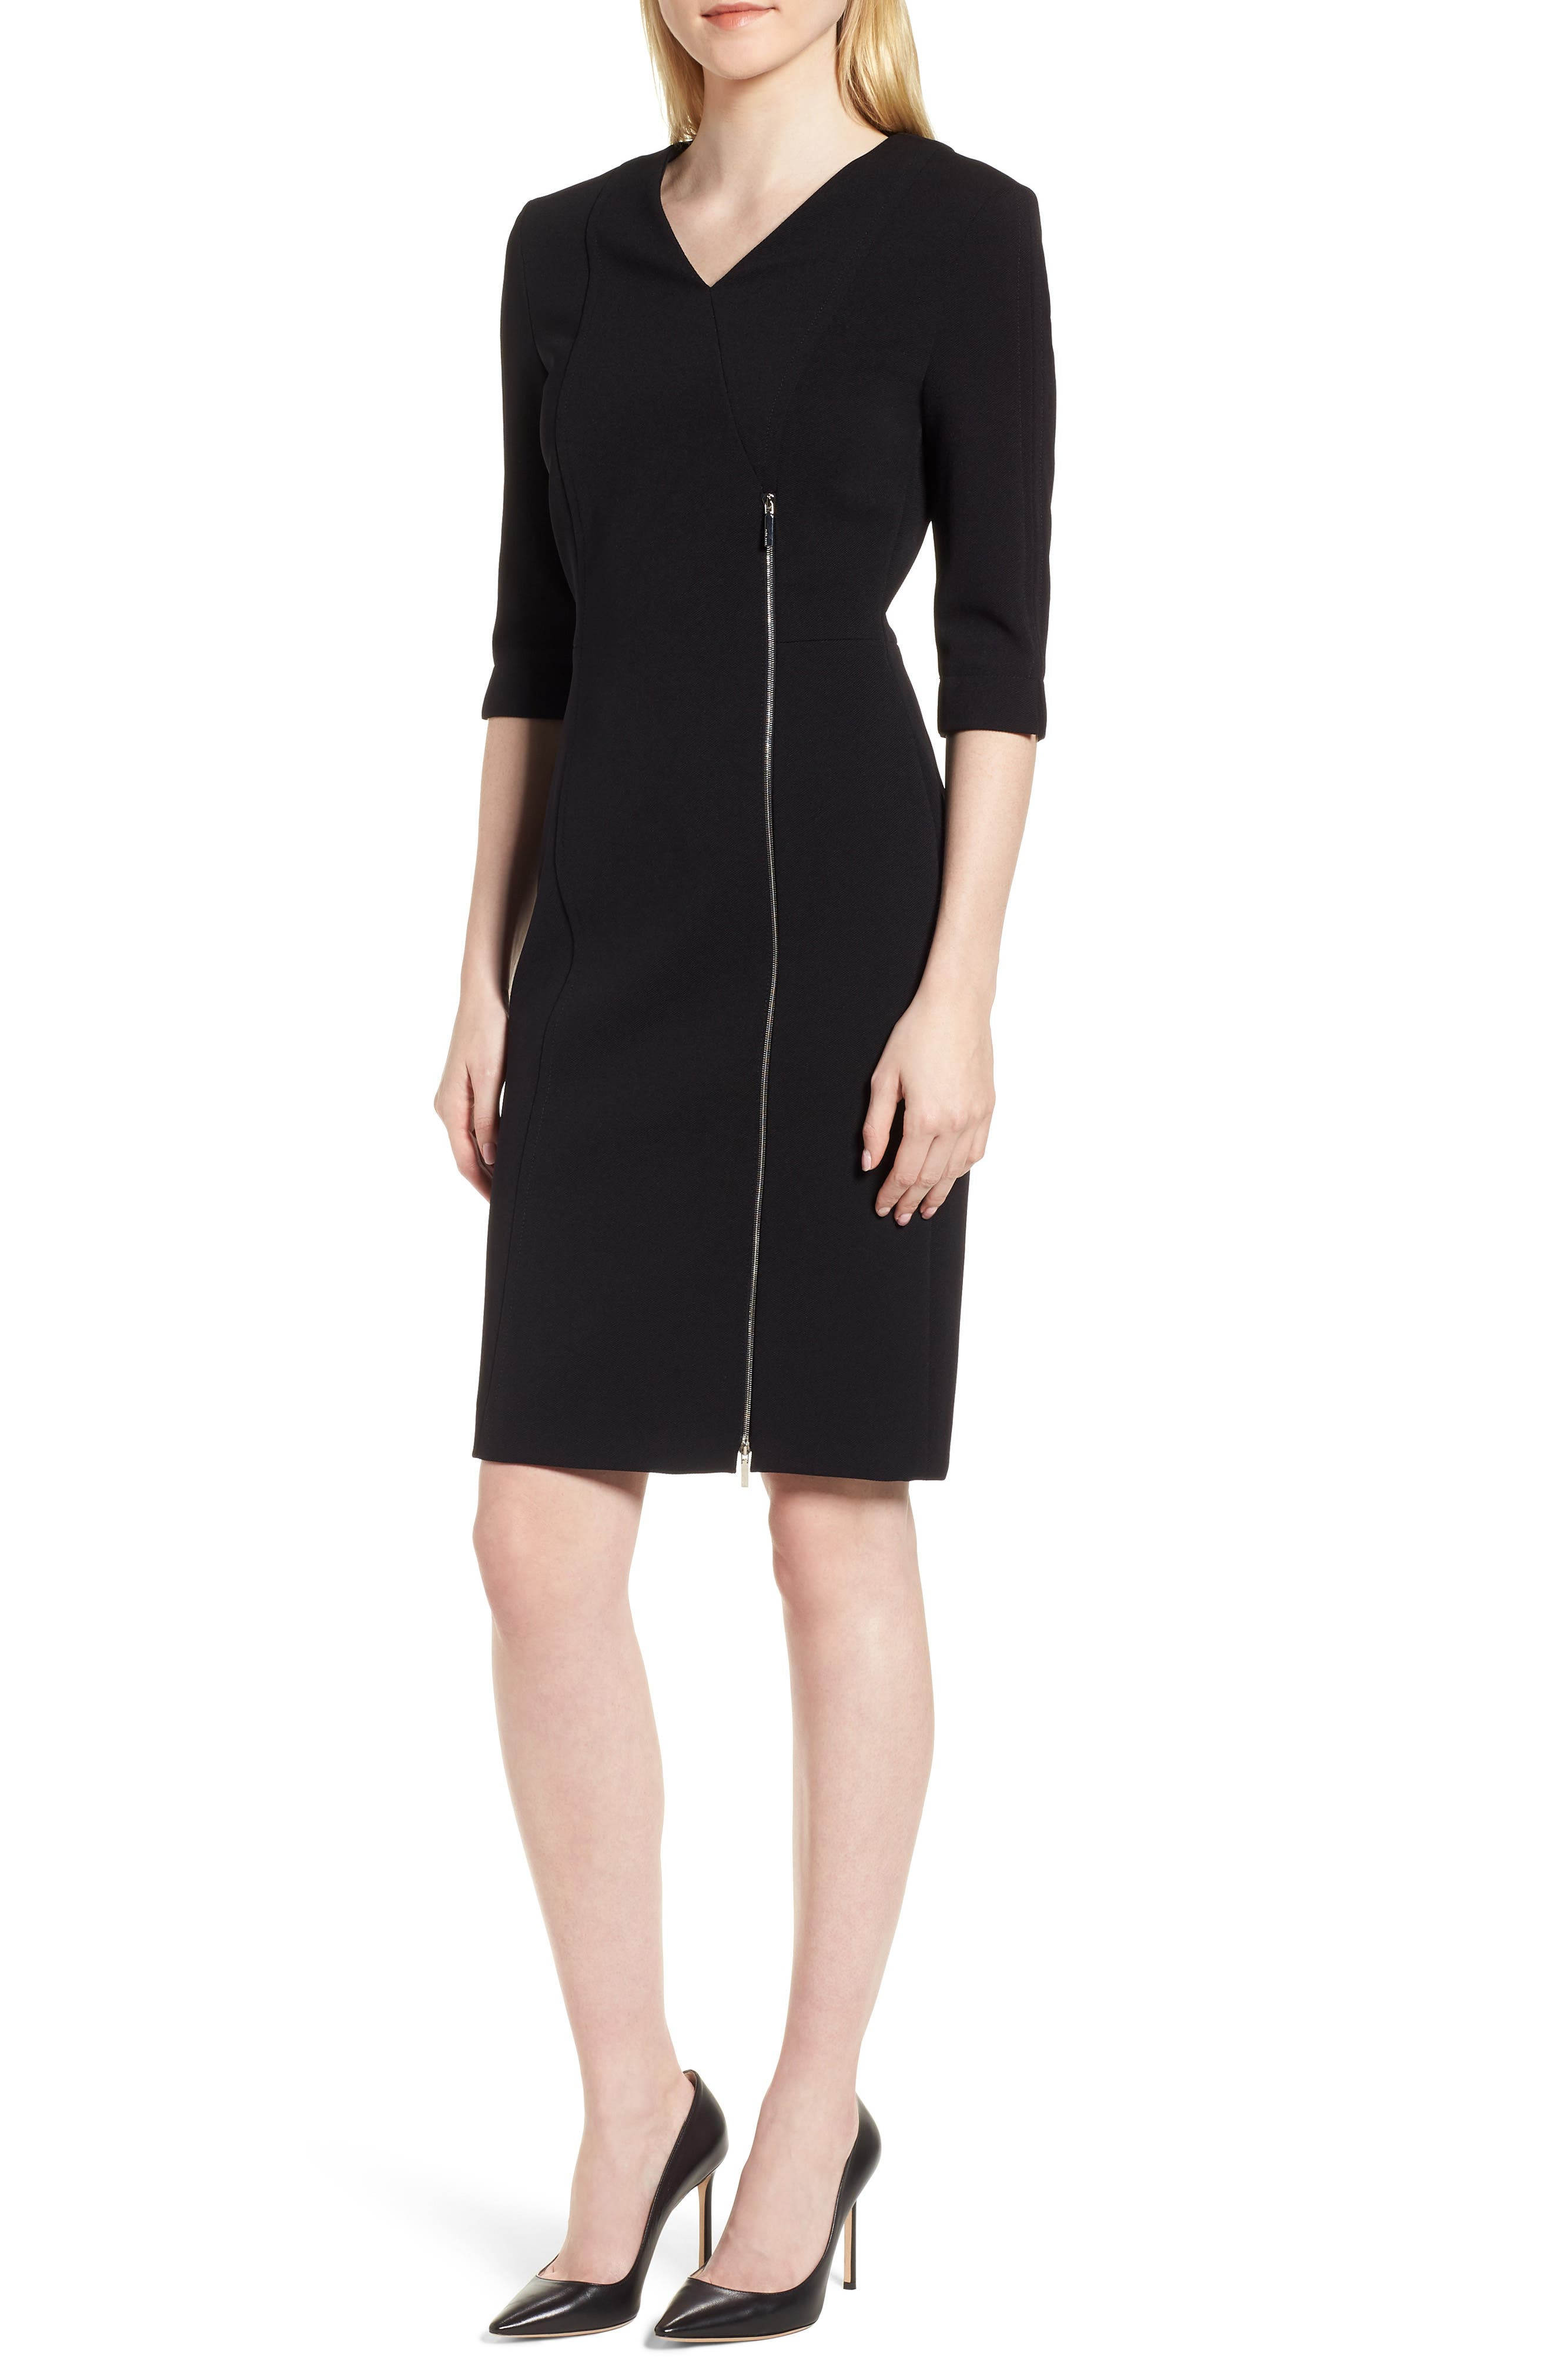 Deazema Twill Jersey Dress,                         Main,                         color, Black